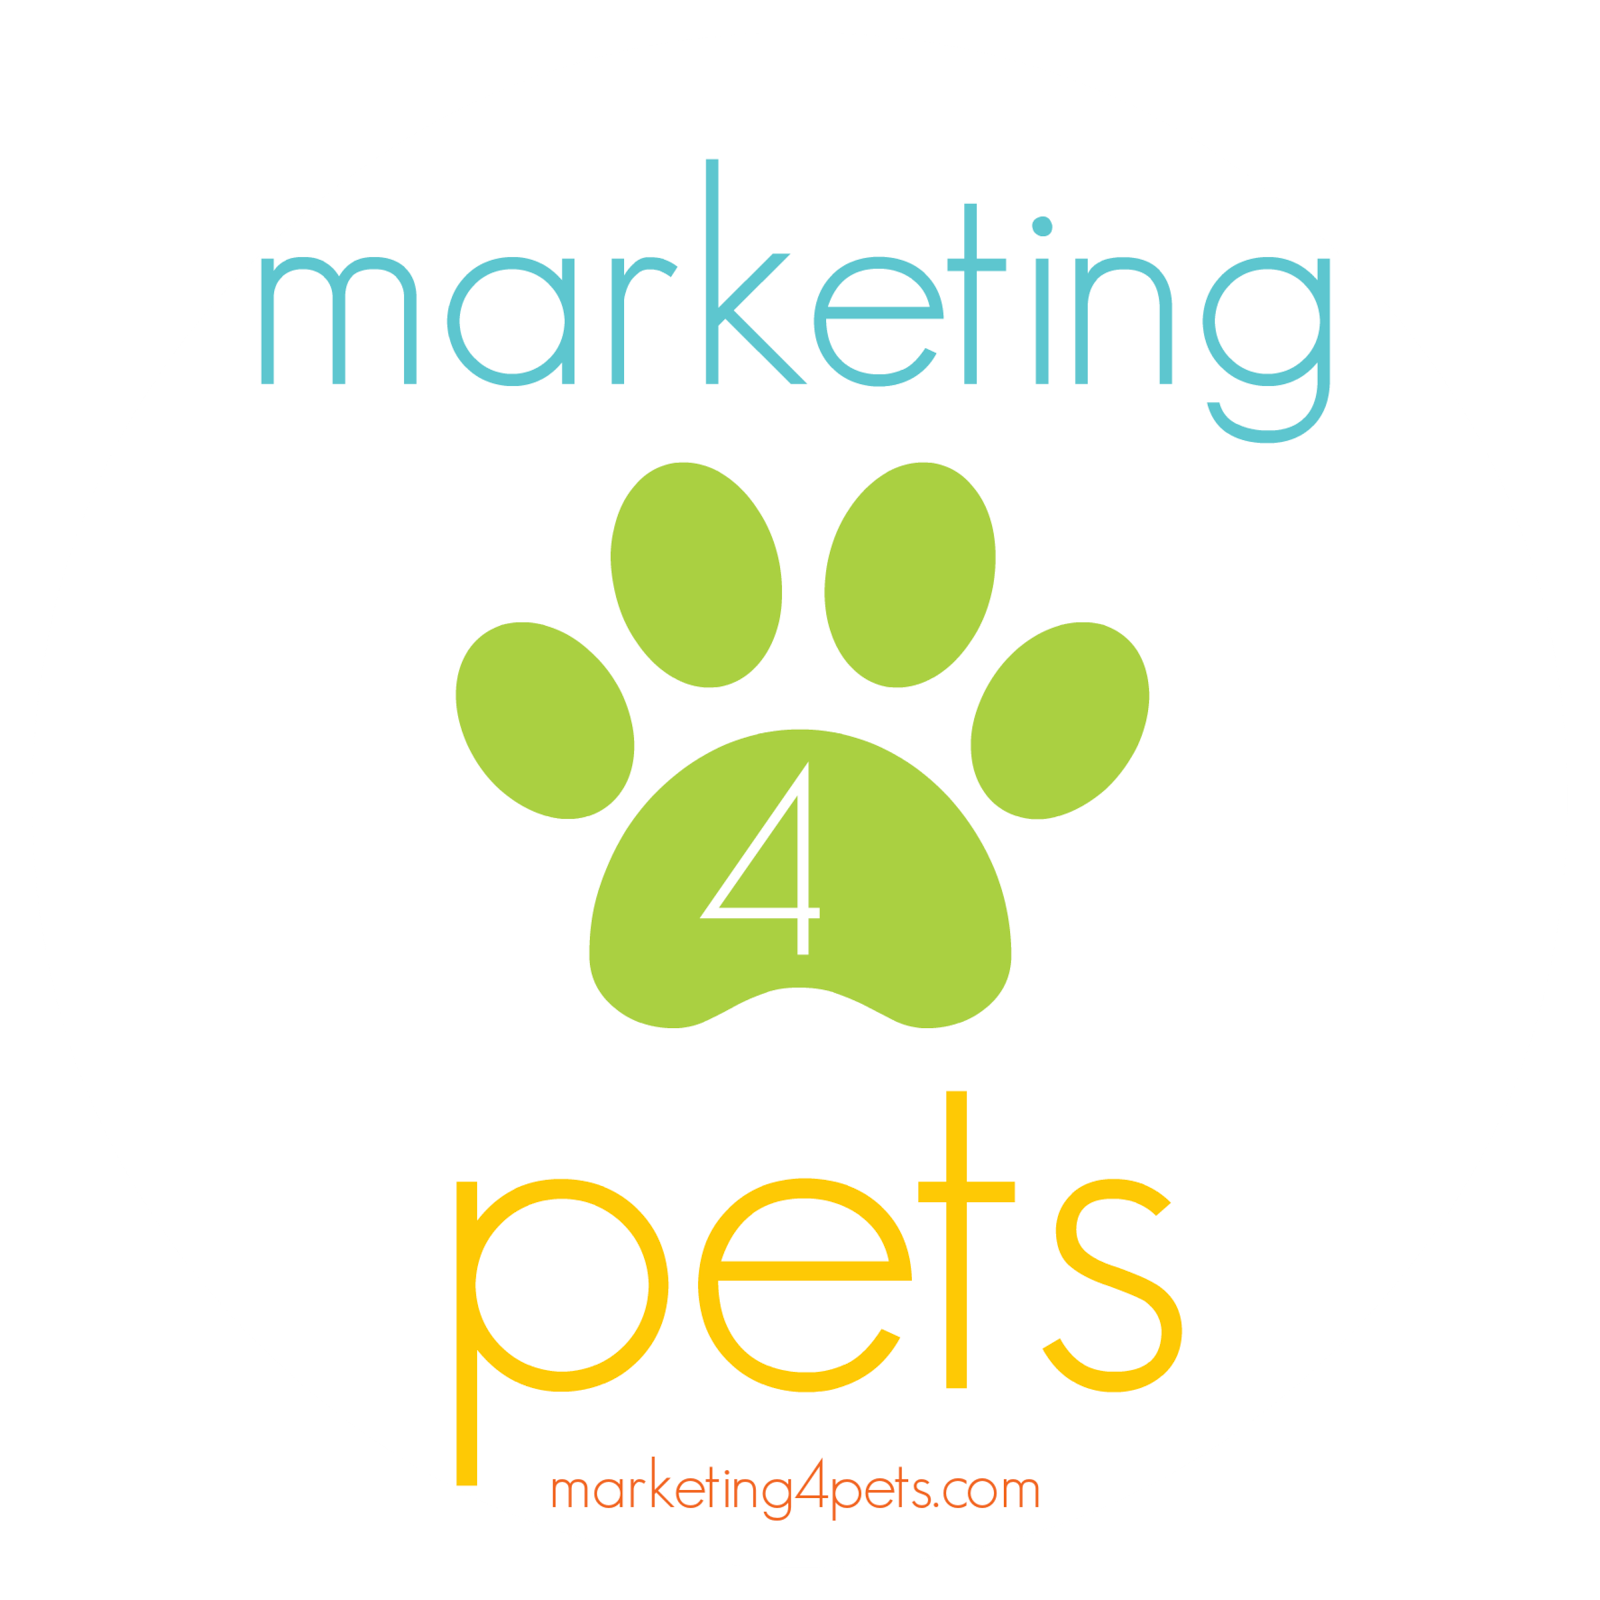 marketing 4 pets